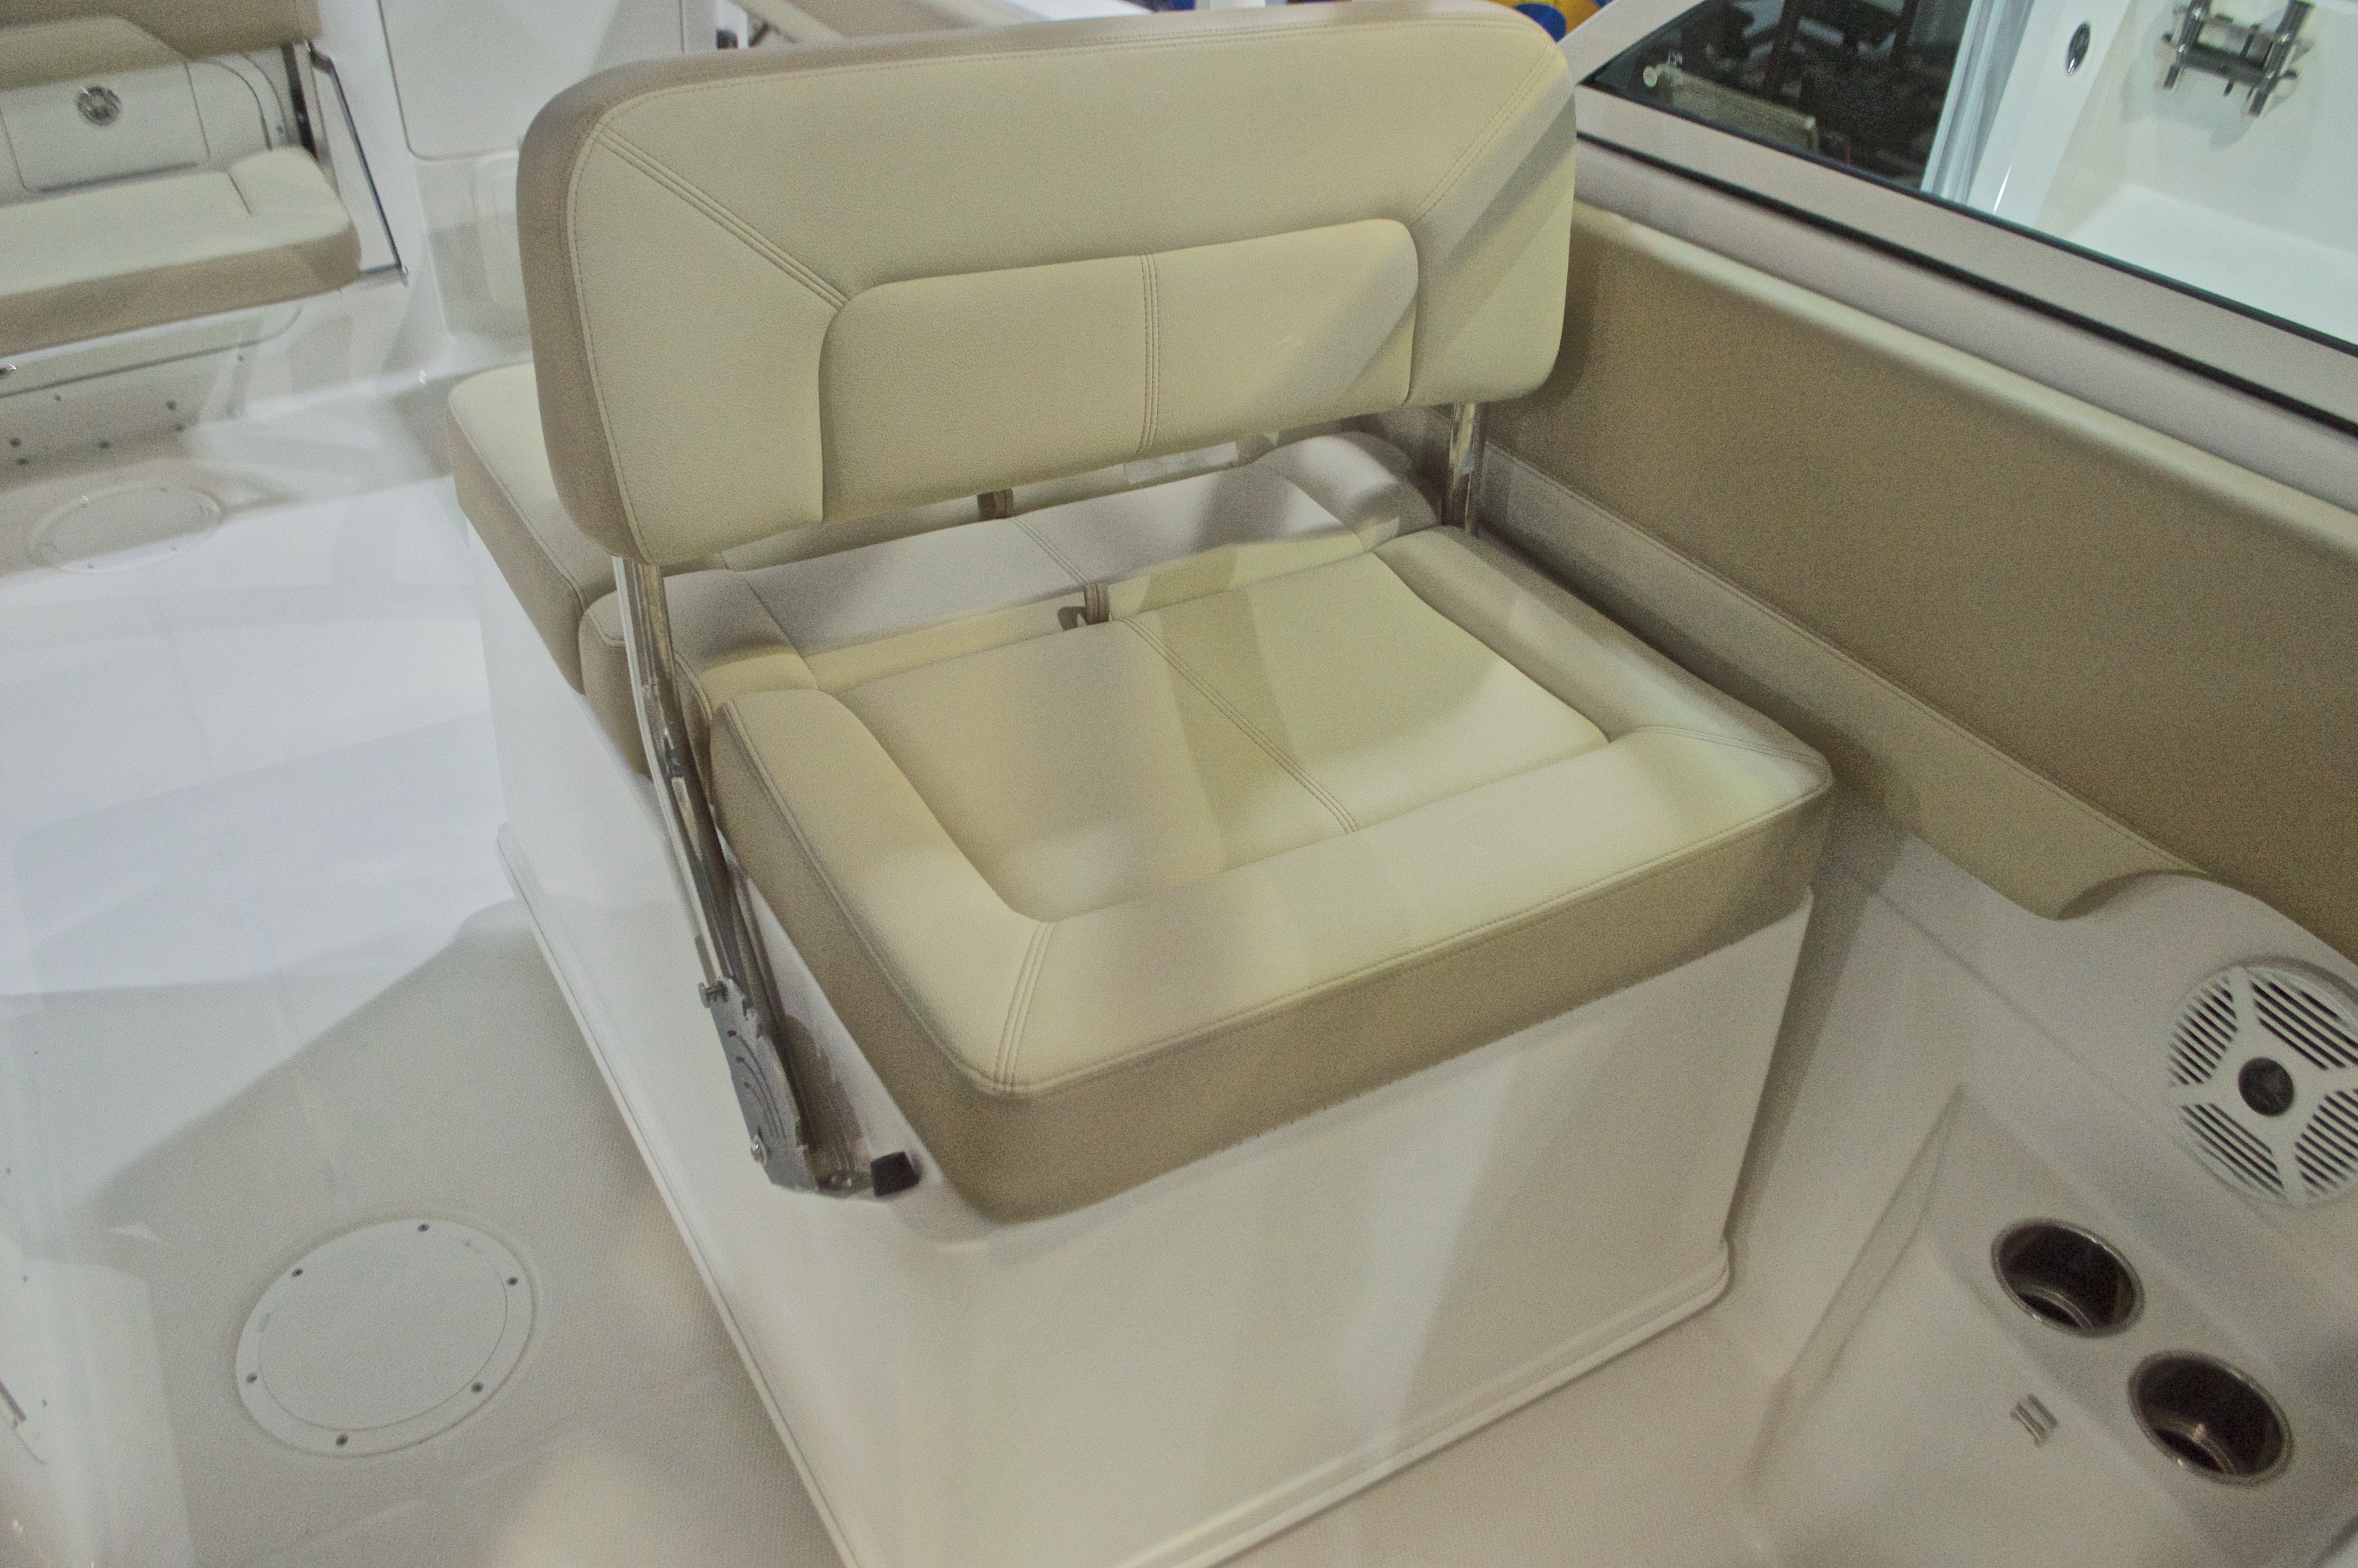 Thumbnail 21 for New 2017 Sailfish 275 Dual Console boat for sale in West Palm Beach, FL